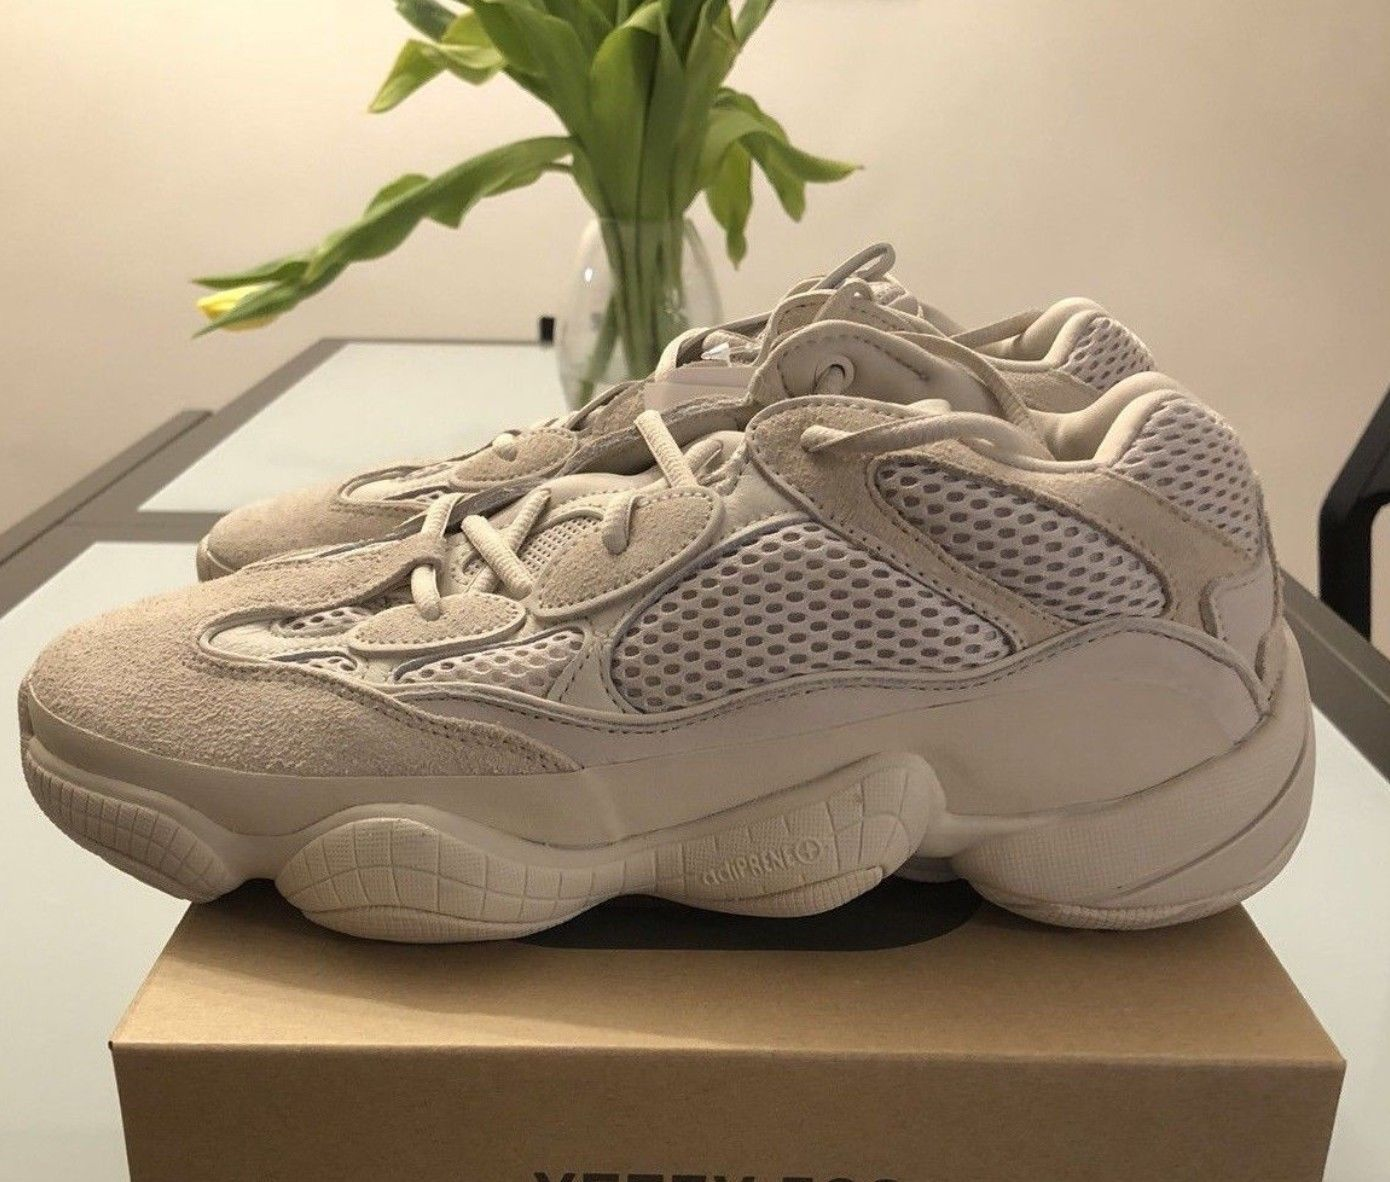 innovative design 16fe2 09779 Adidas YEEZY 500 'Blush' Desert Rat DB2908 10.5 | sports ...